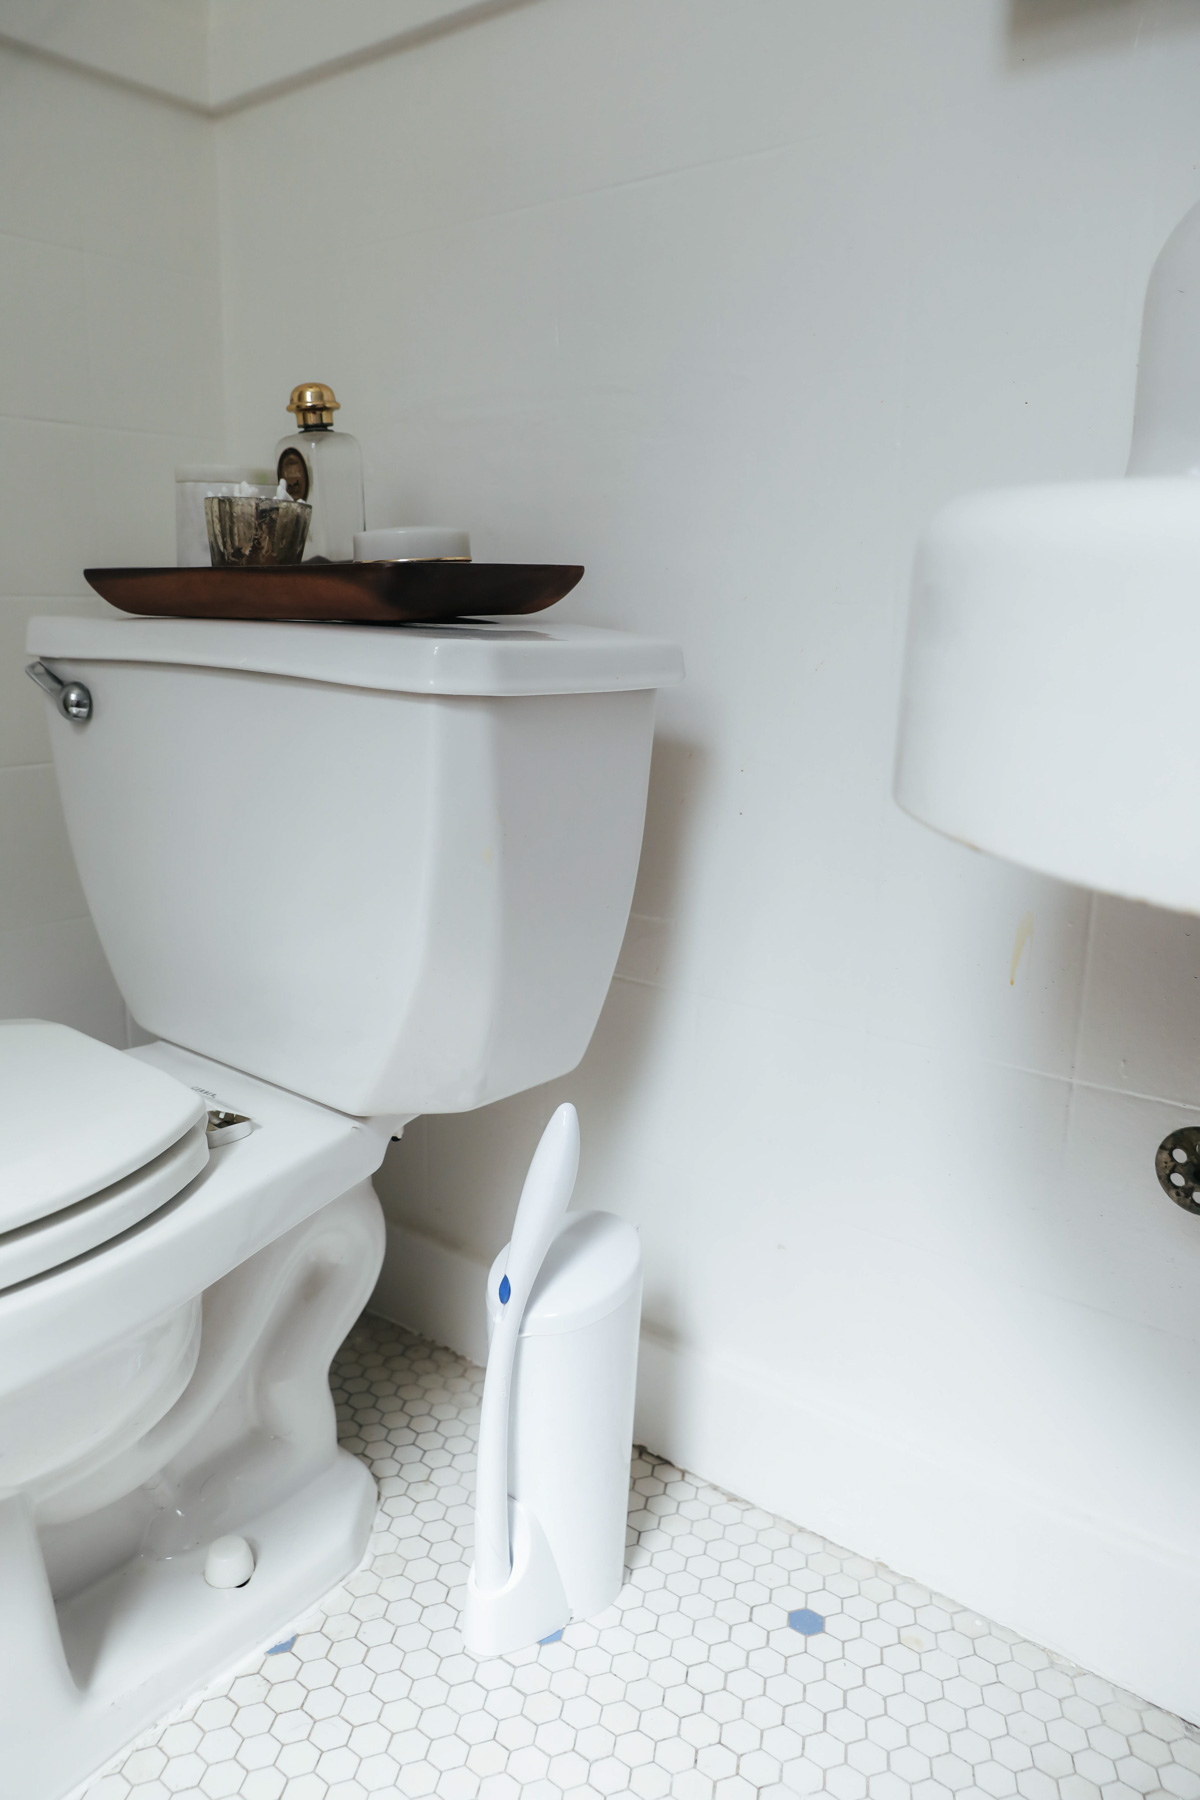 Easy clean bathroom -  Scrub Down The Toilet And Drop The Head In The Trash All Without Touching Anything With Your Hands Plus It S Nice And Sleek So It S Perfect For Small